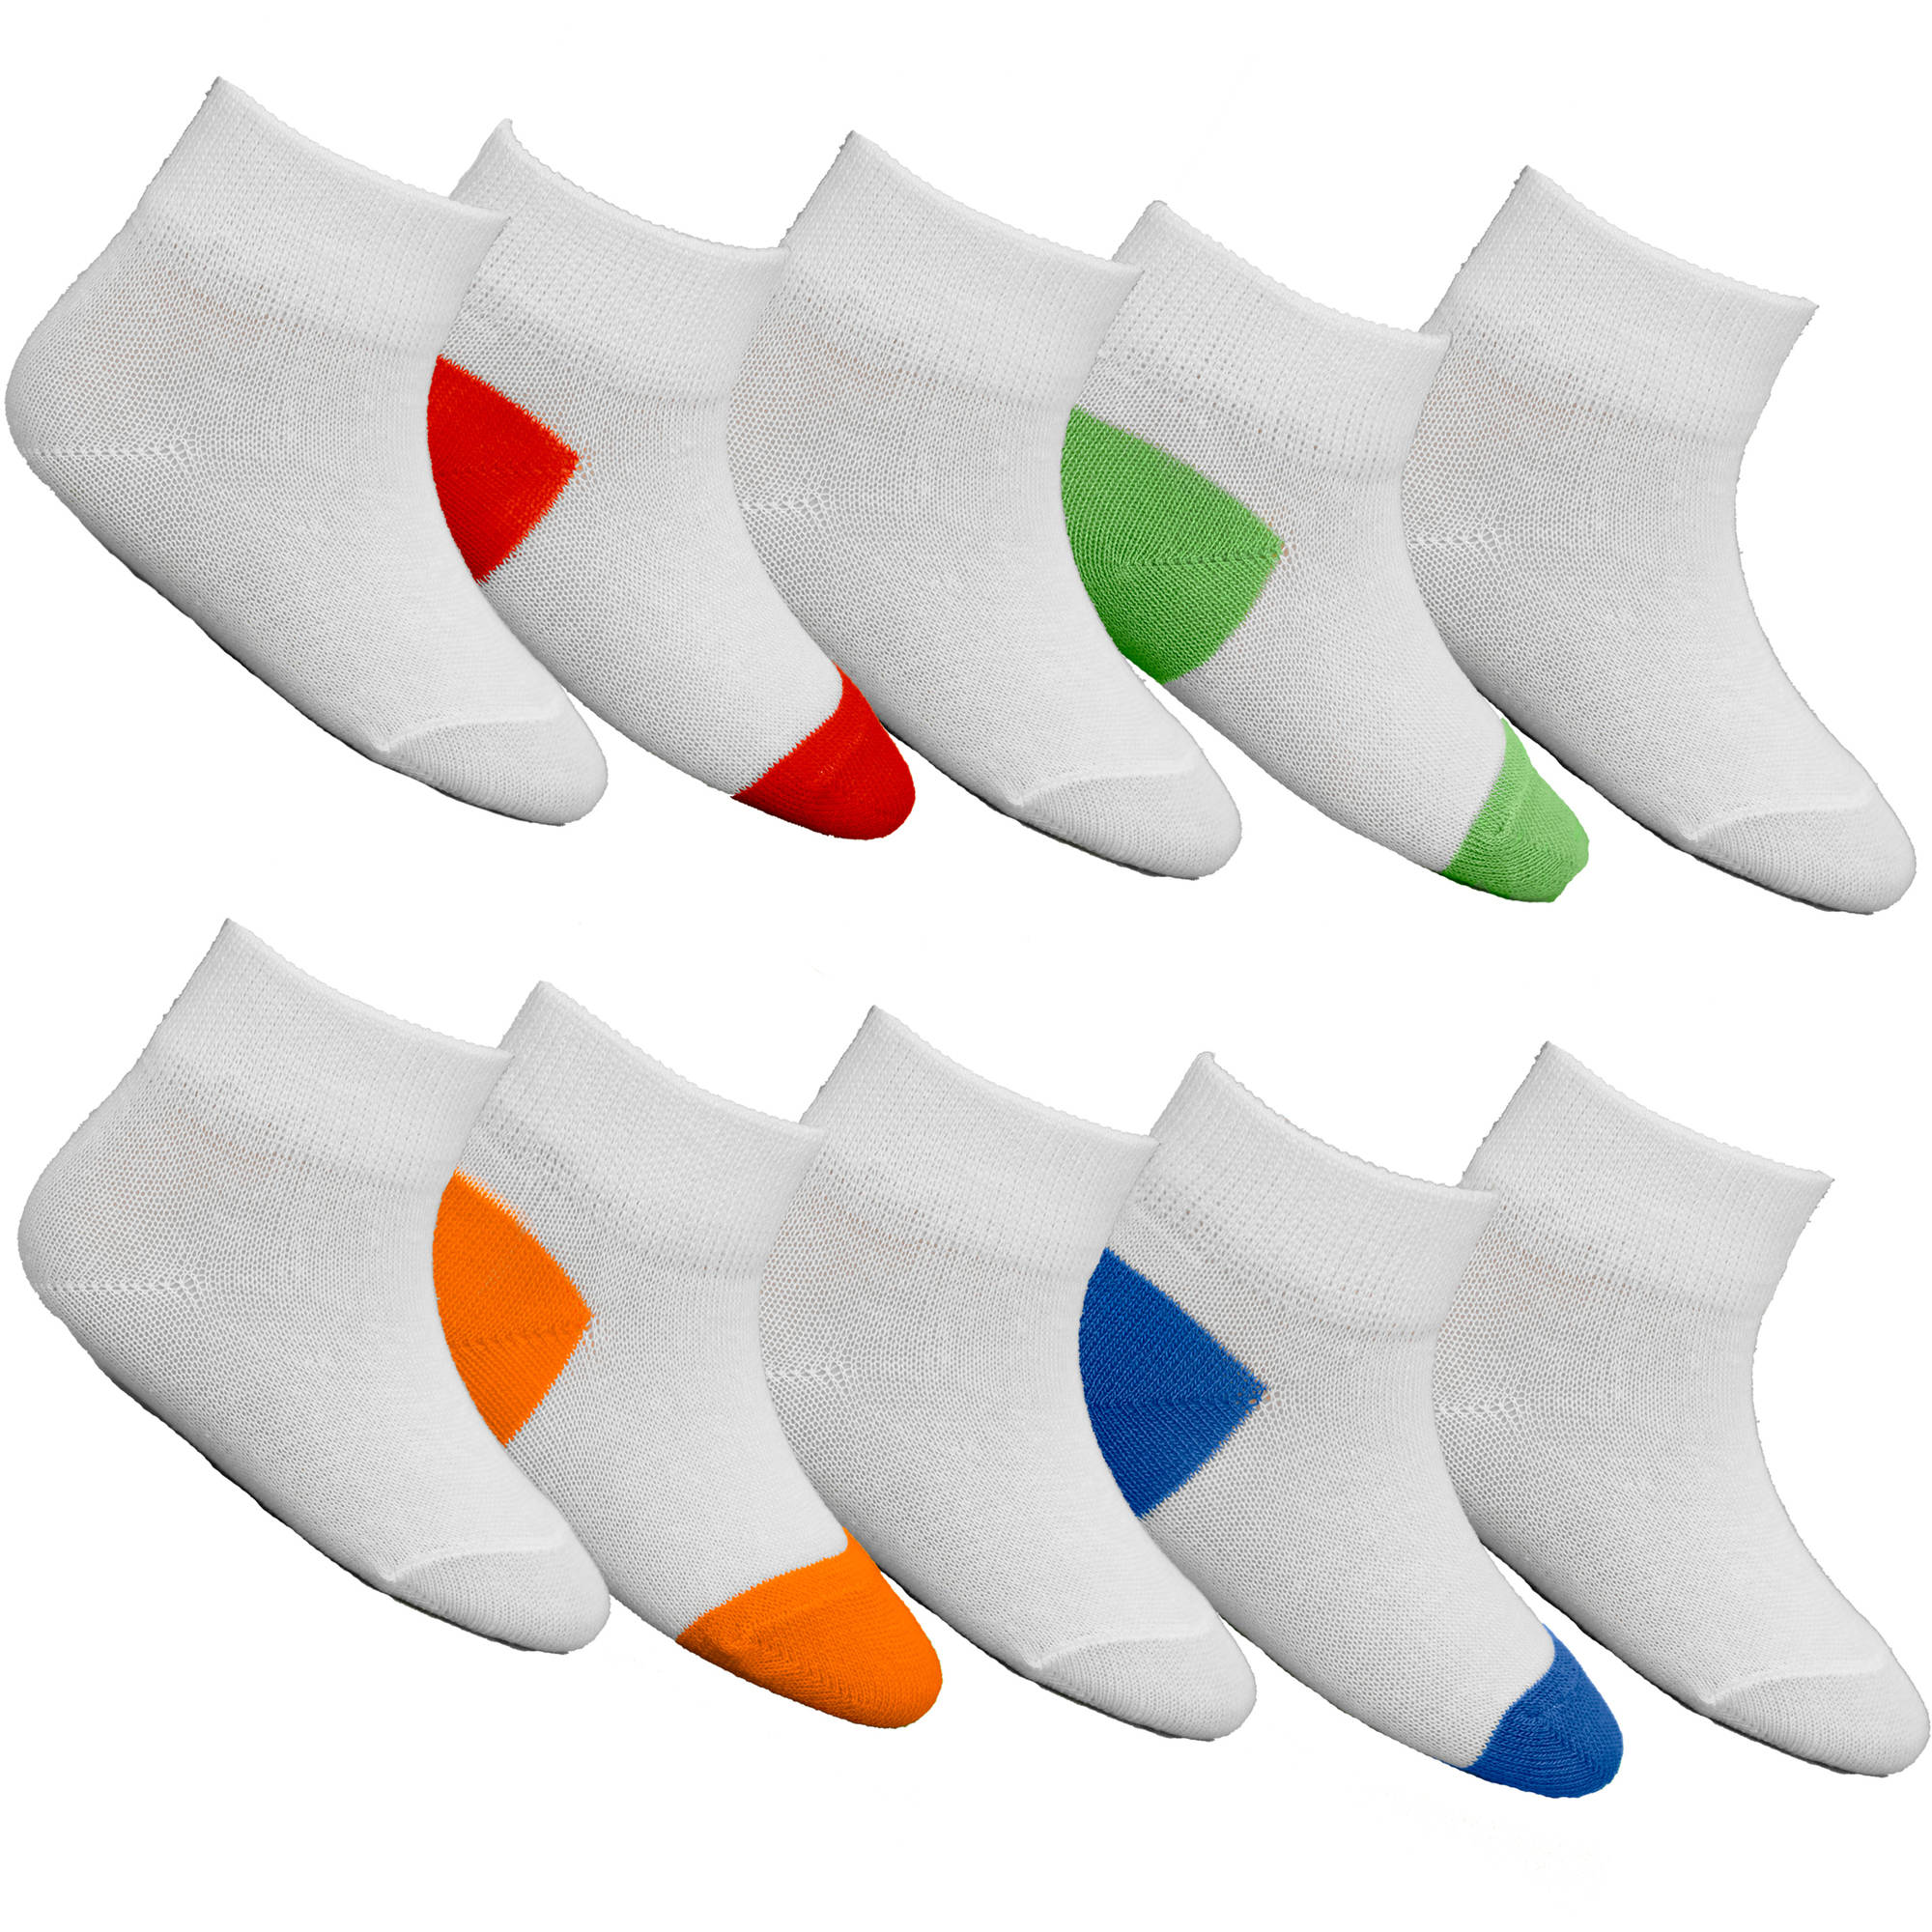 Fruit of the Loom Baby Boys' Tuff n' Comfy Low Cut Socks - 10 Pack